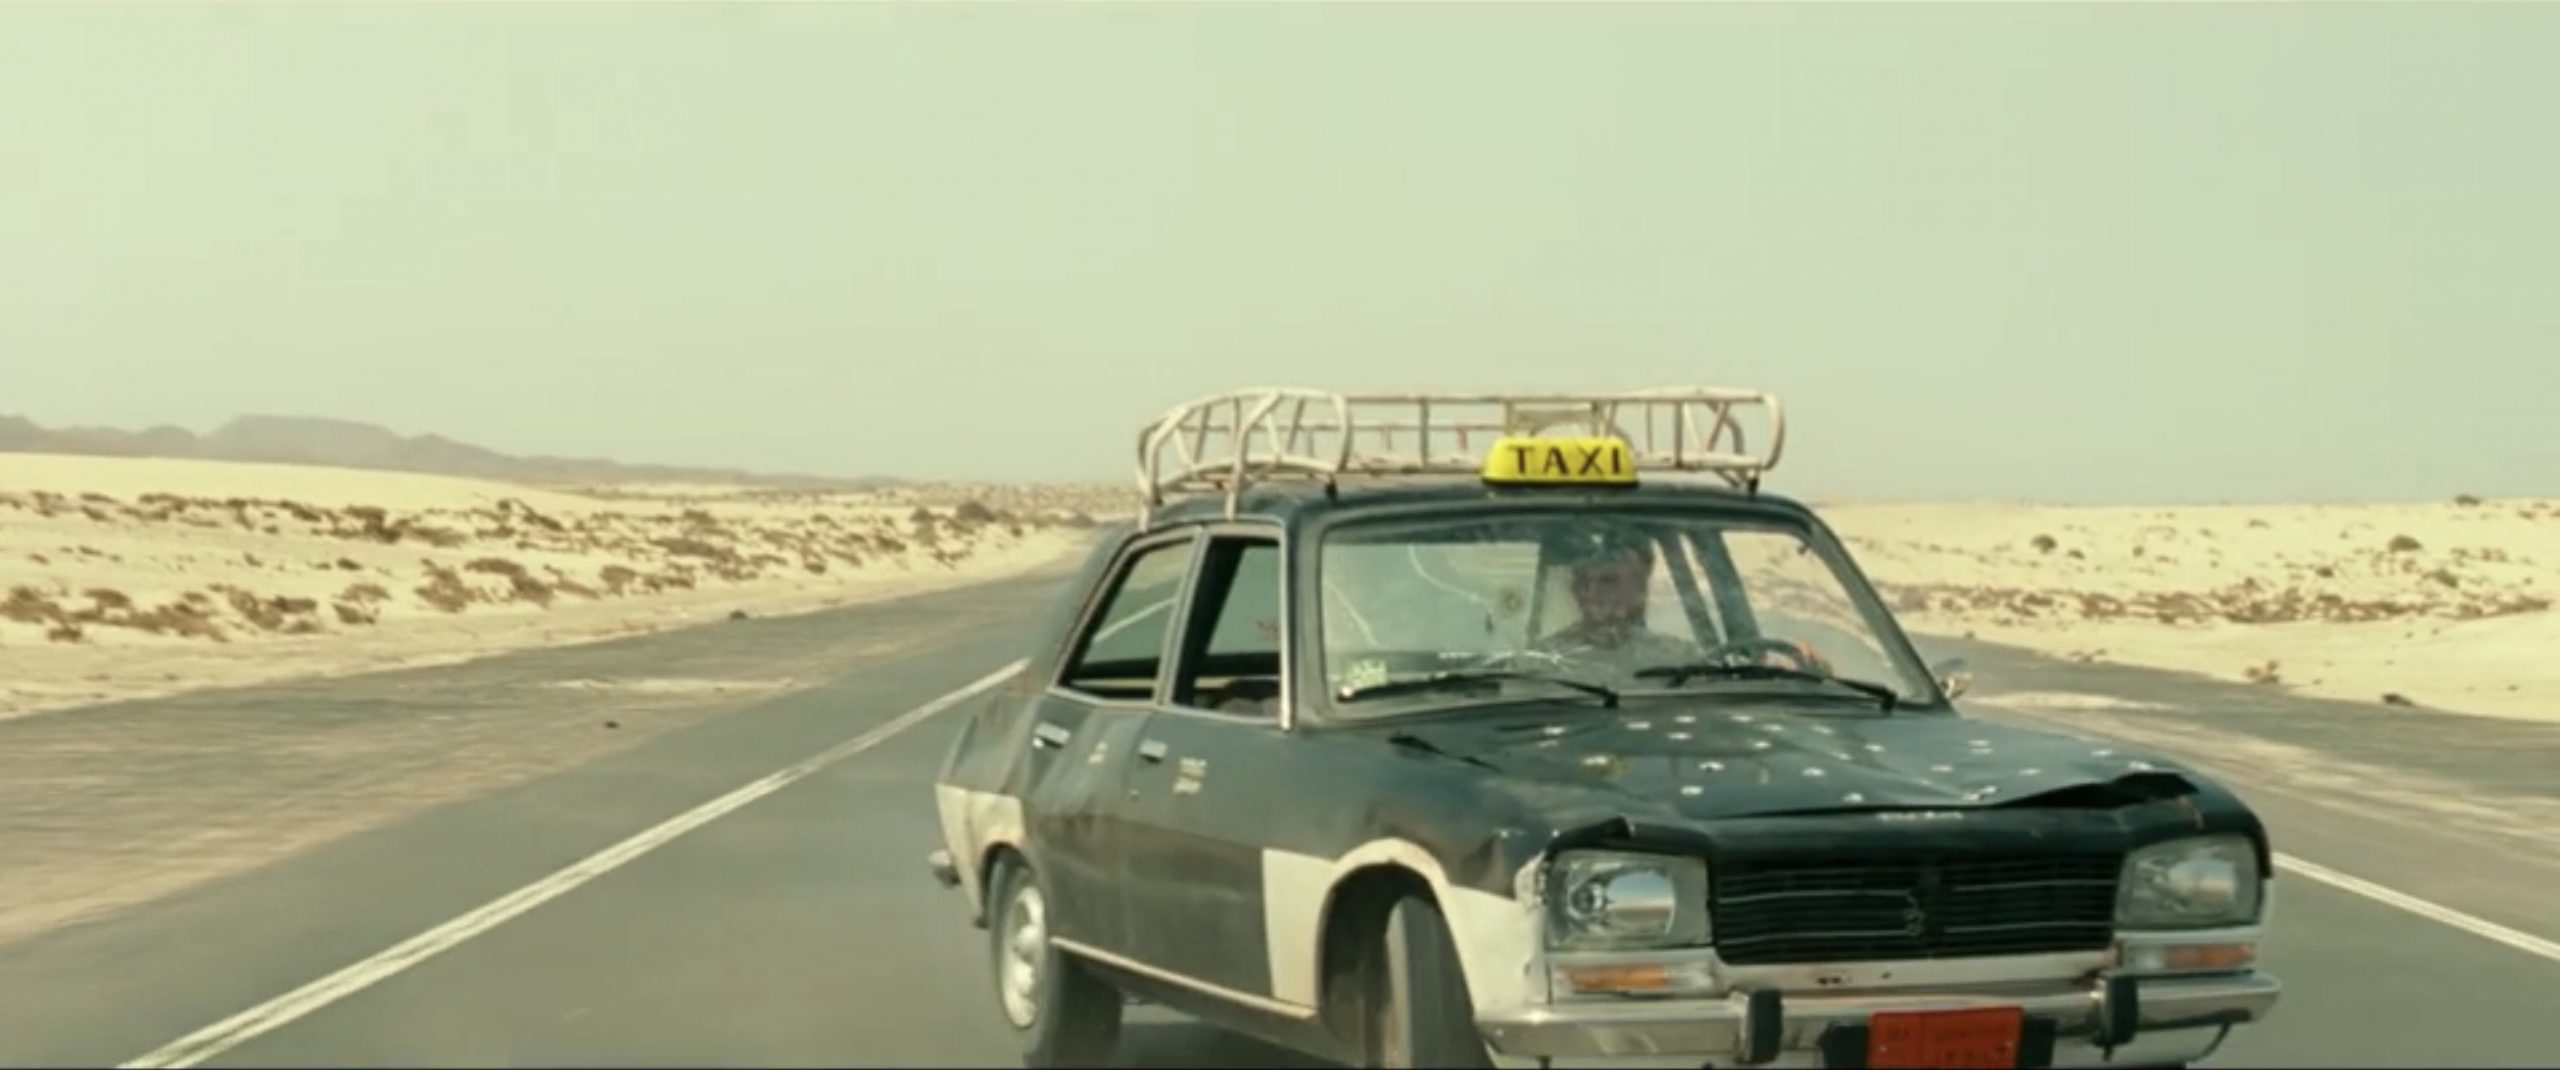 chris pine taxi chase scene bullet holes action